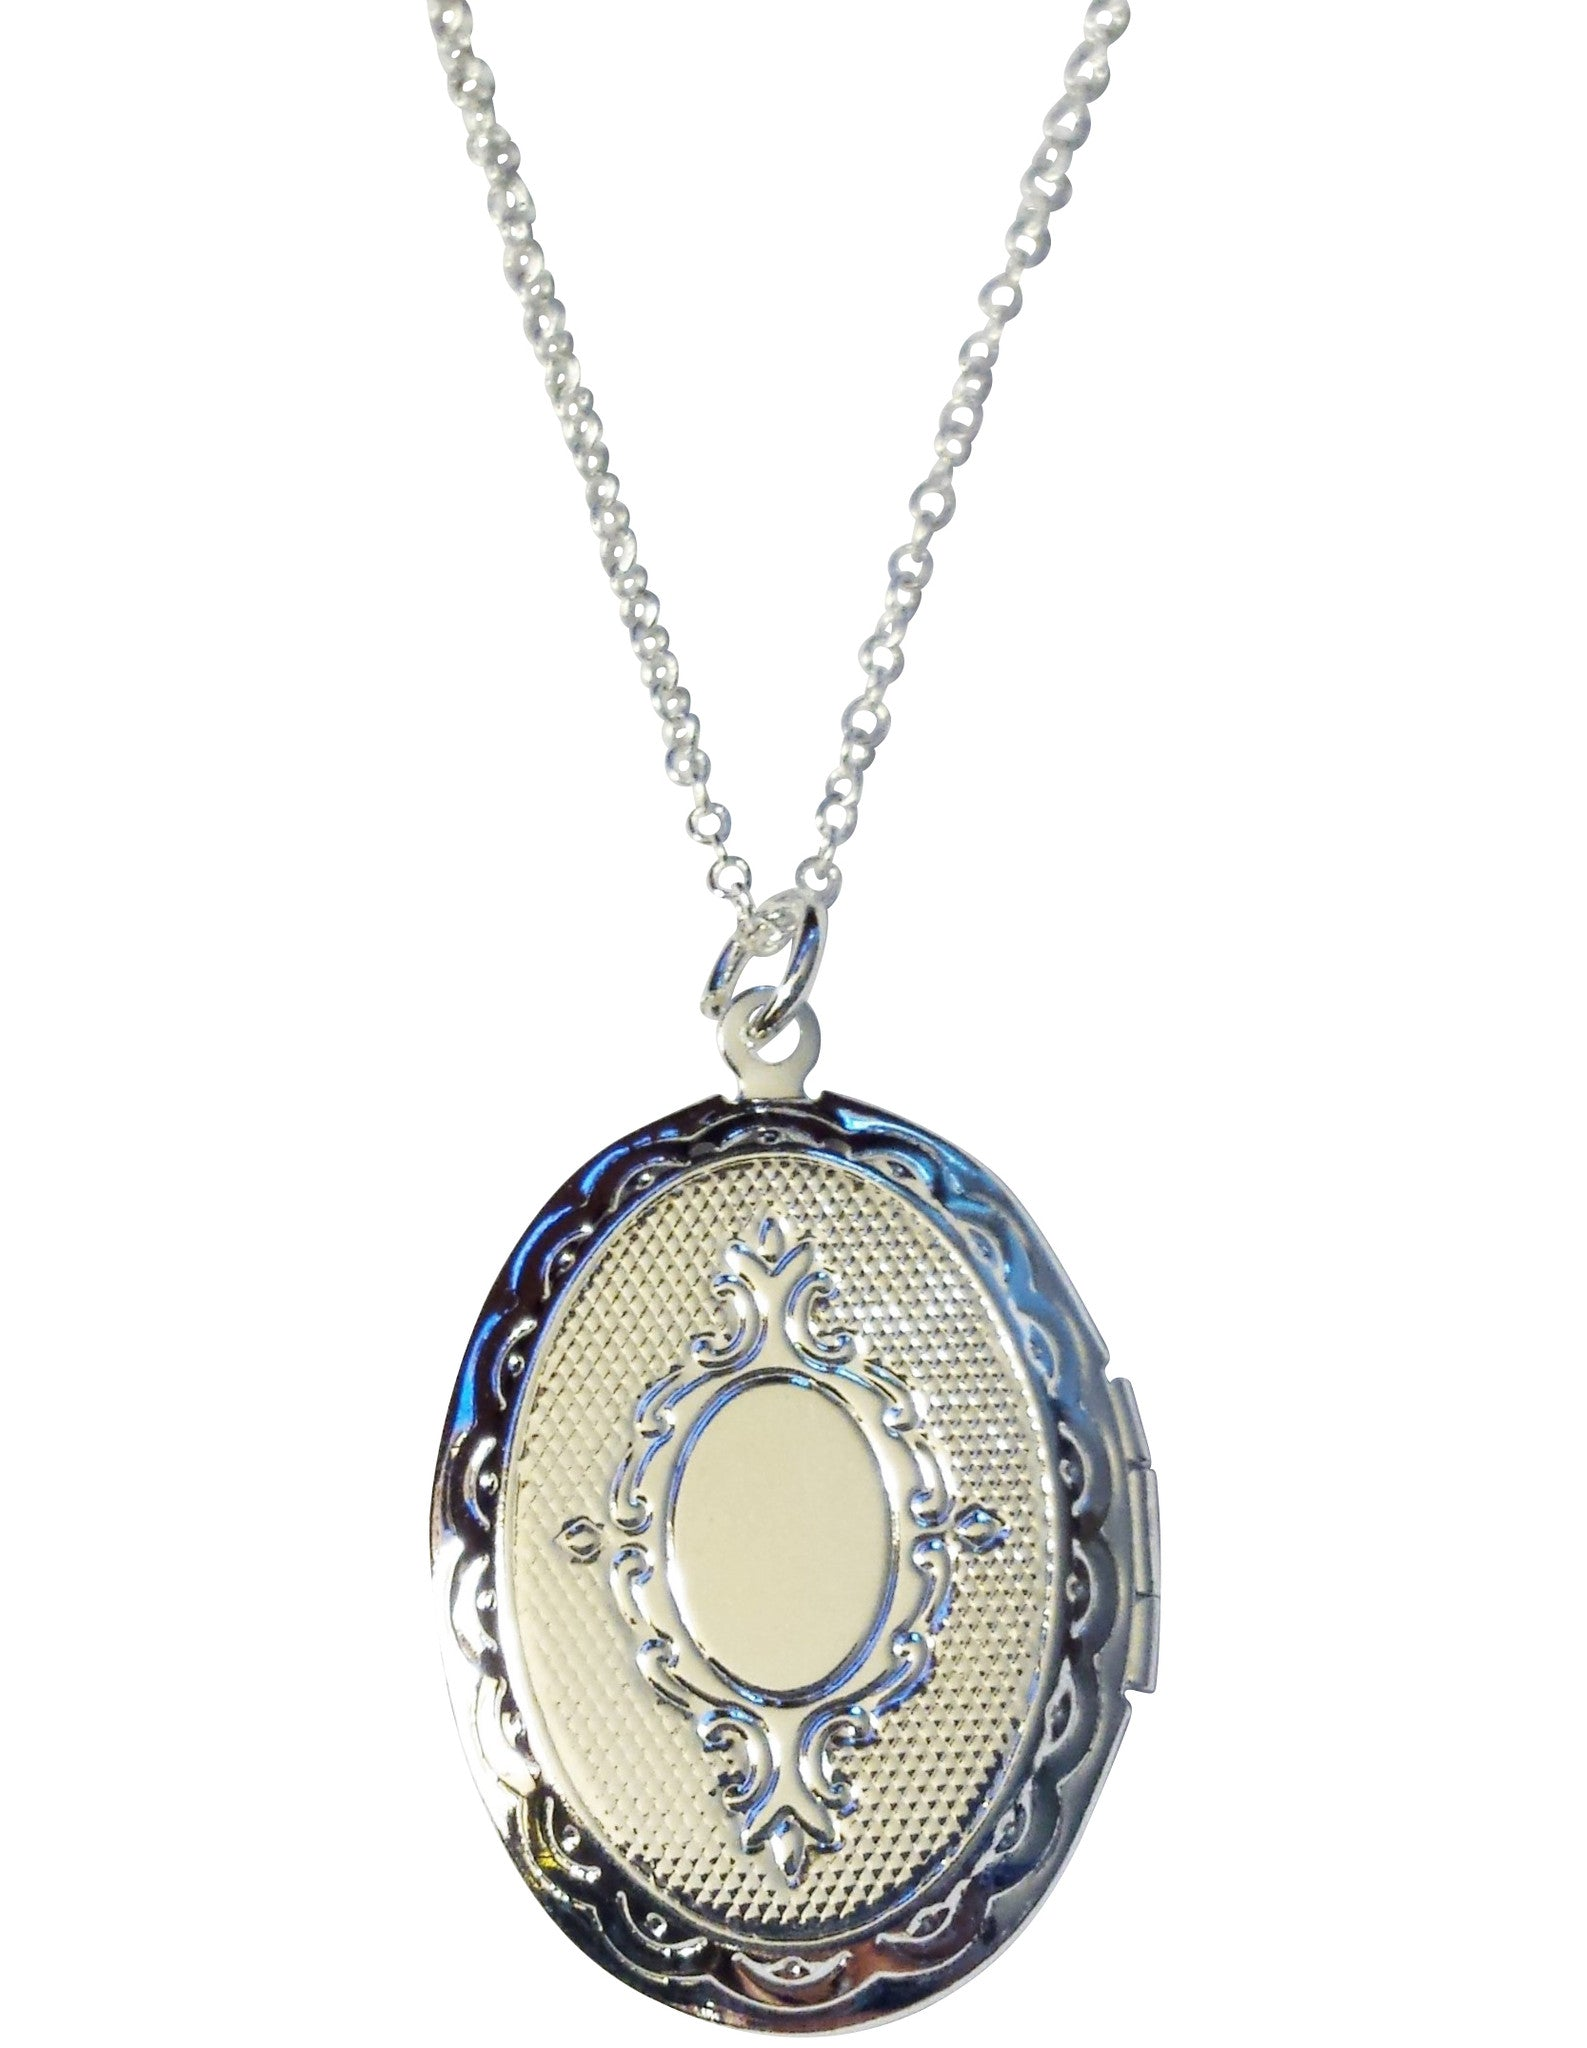 Lovely classic locket